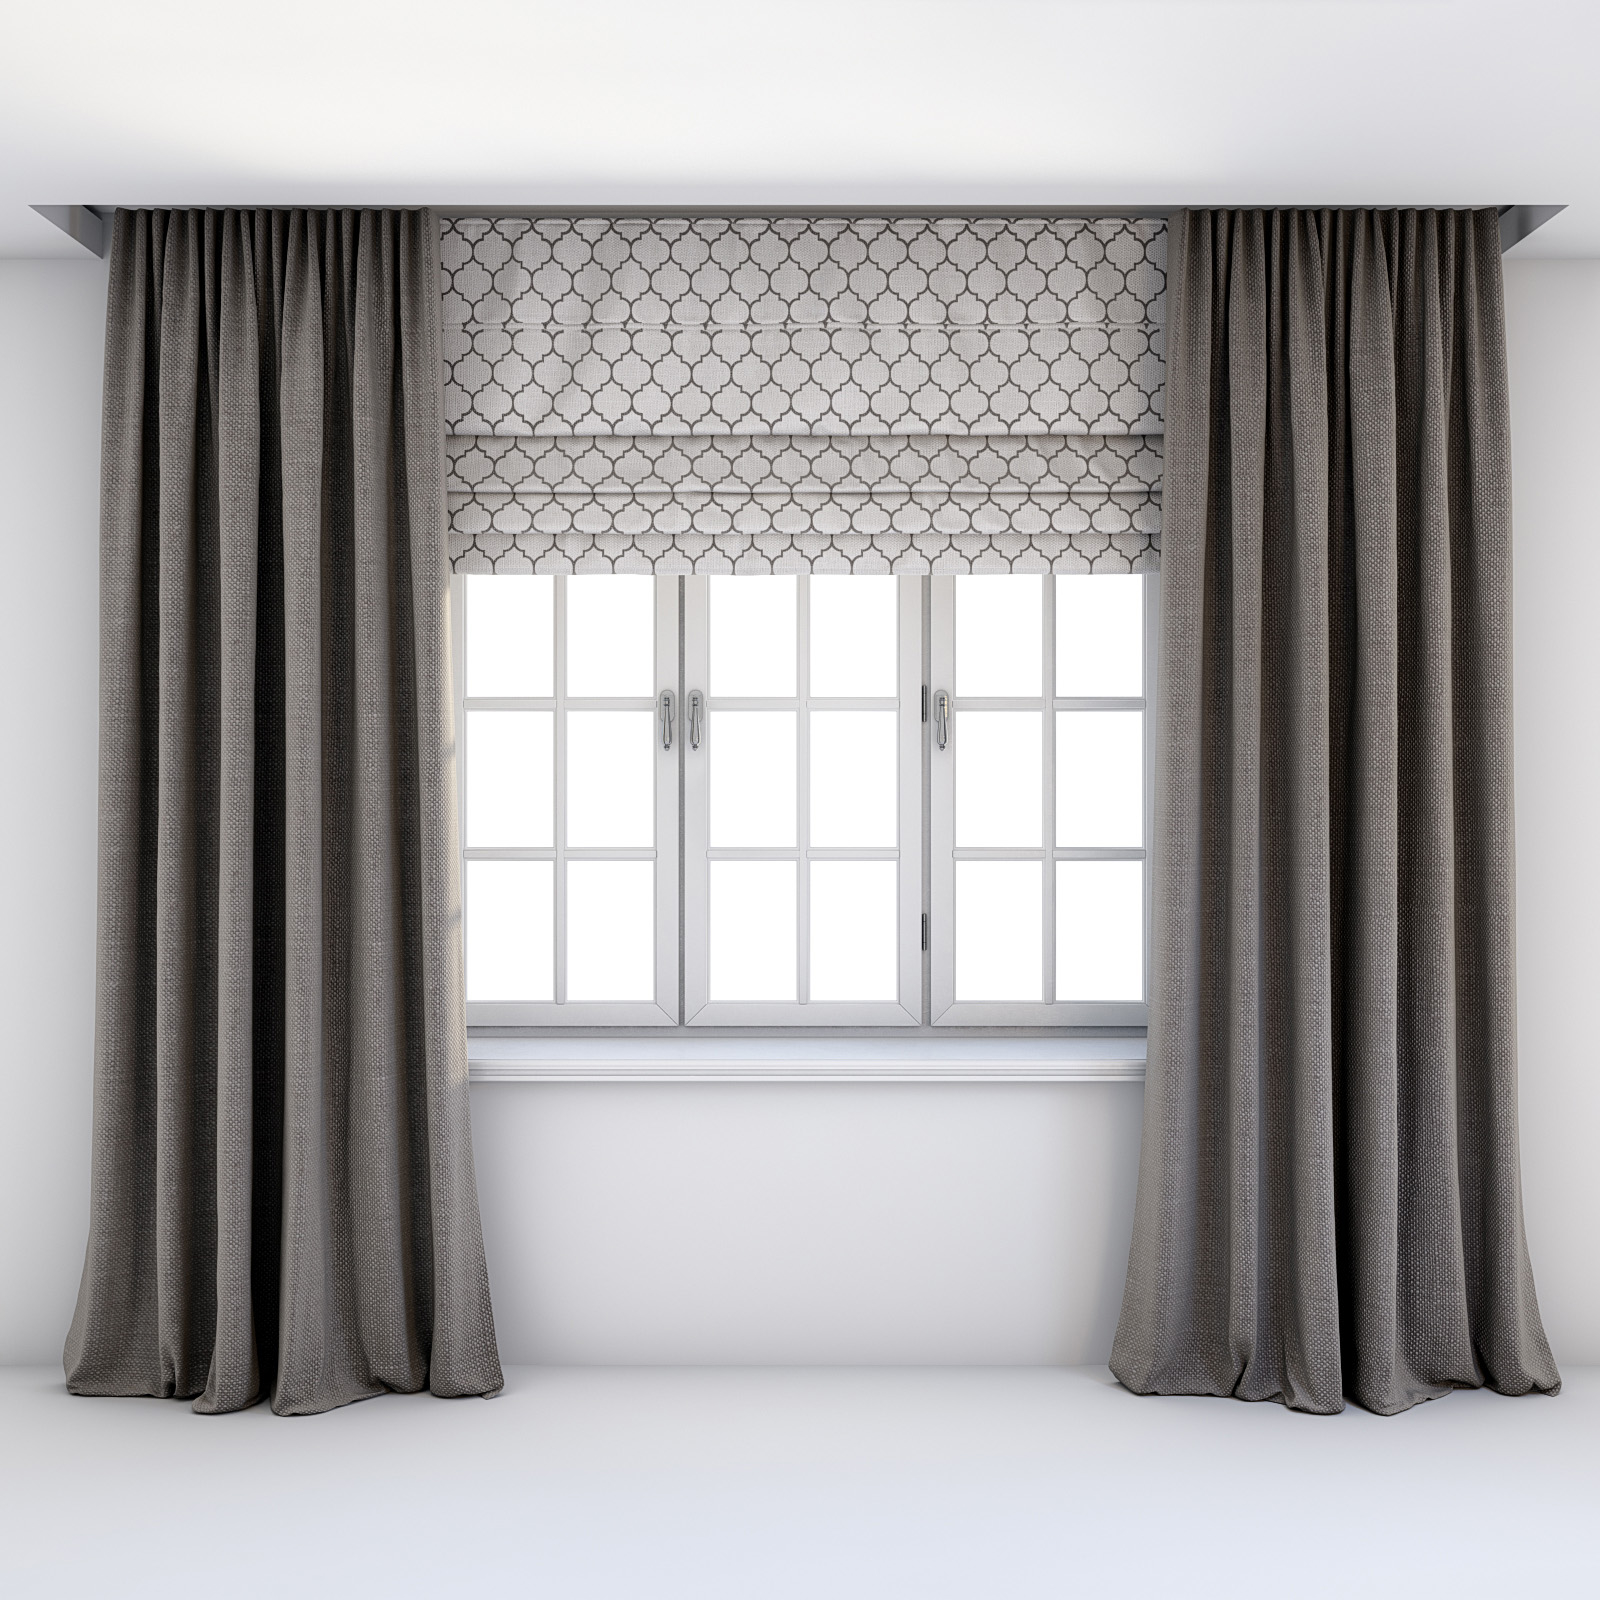 Curtains With Roman Blinds And Window